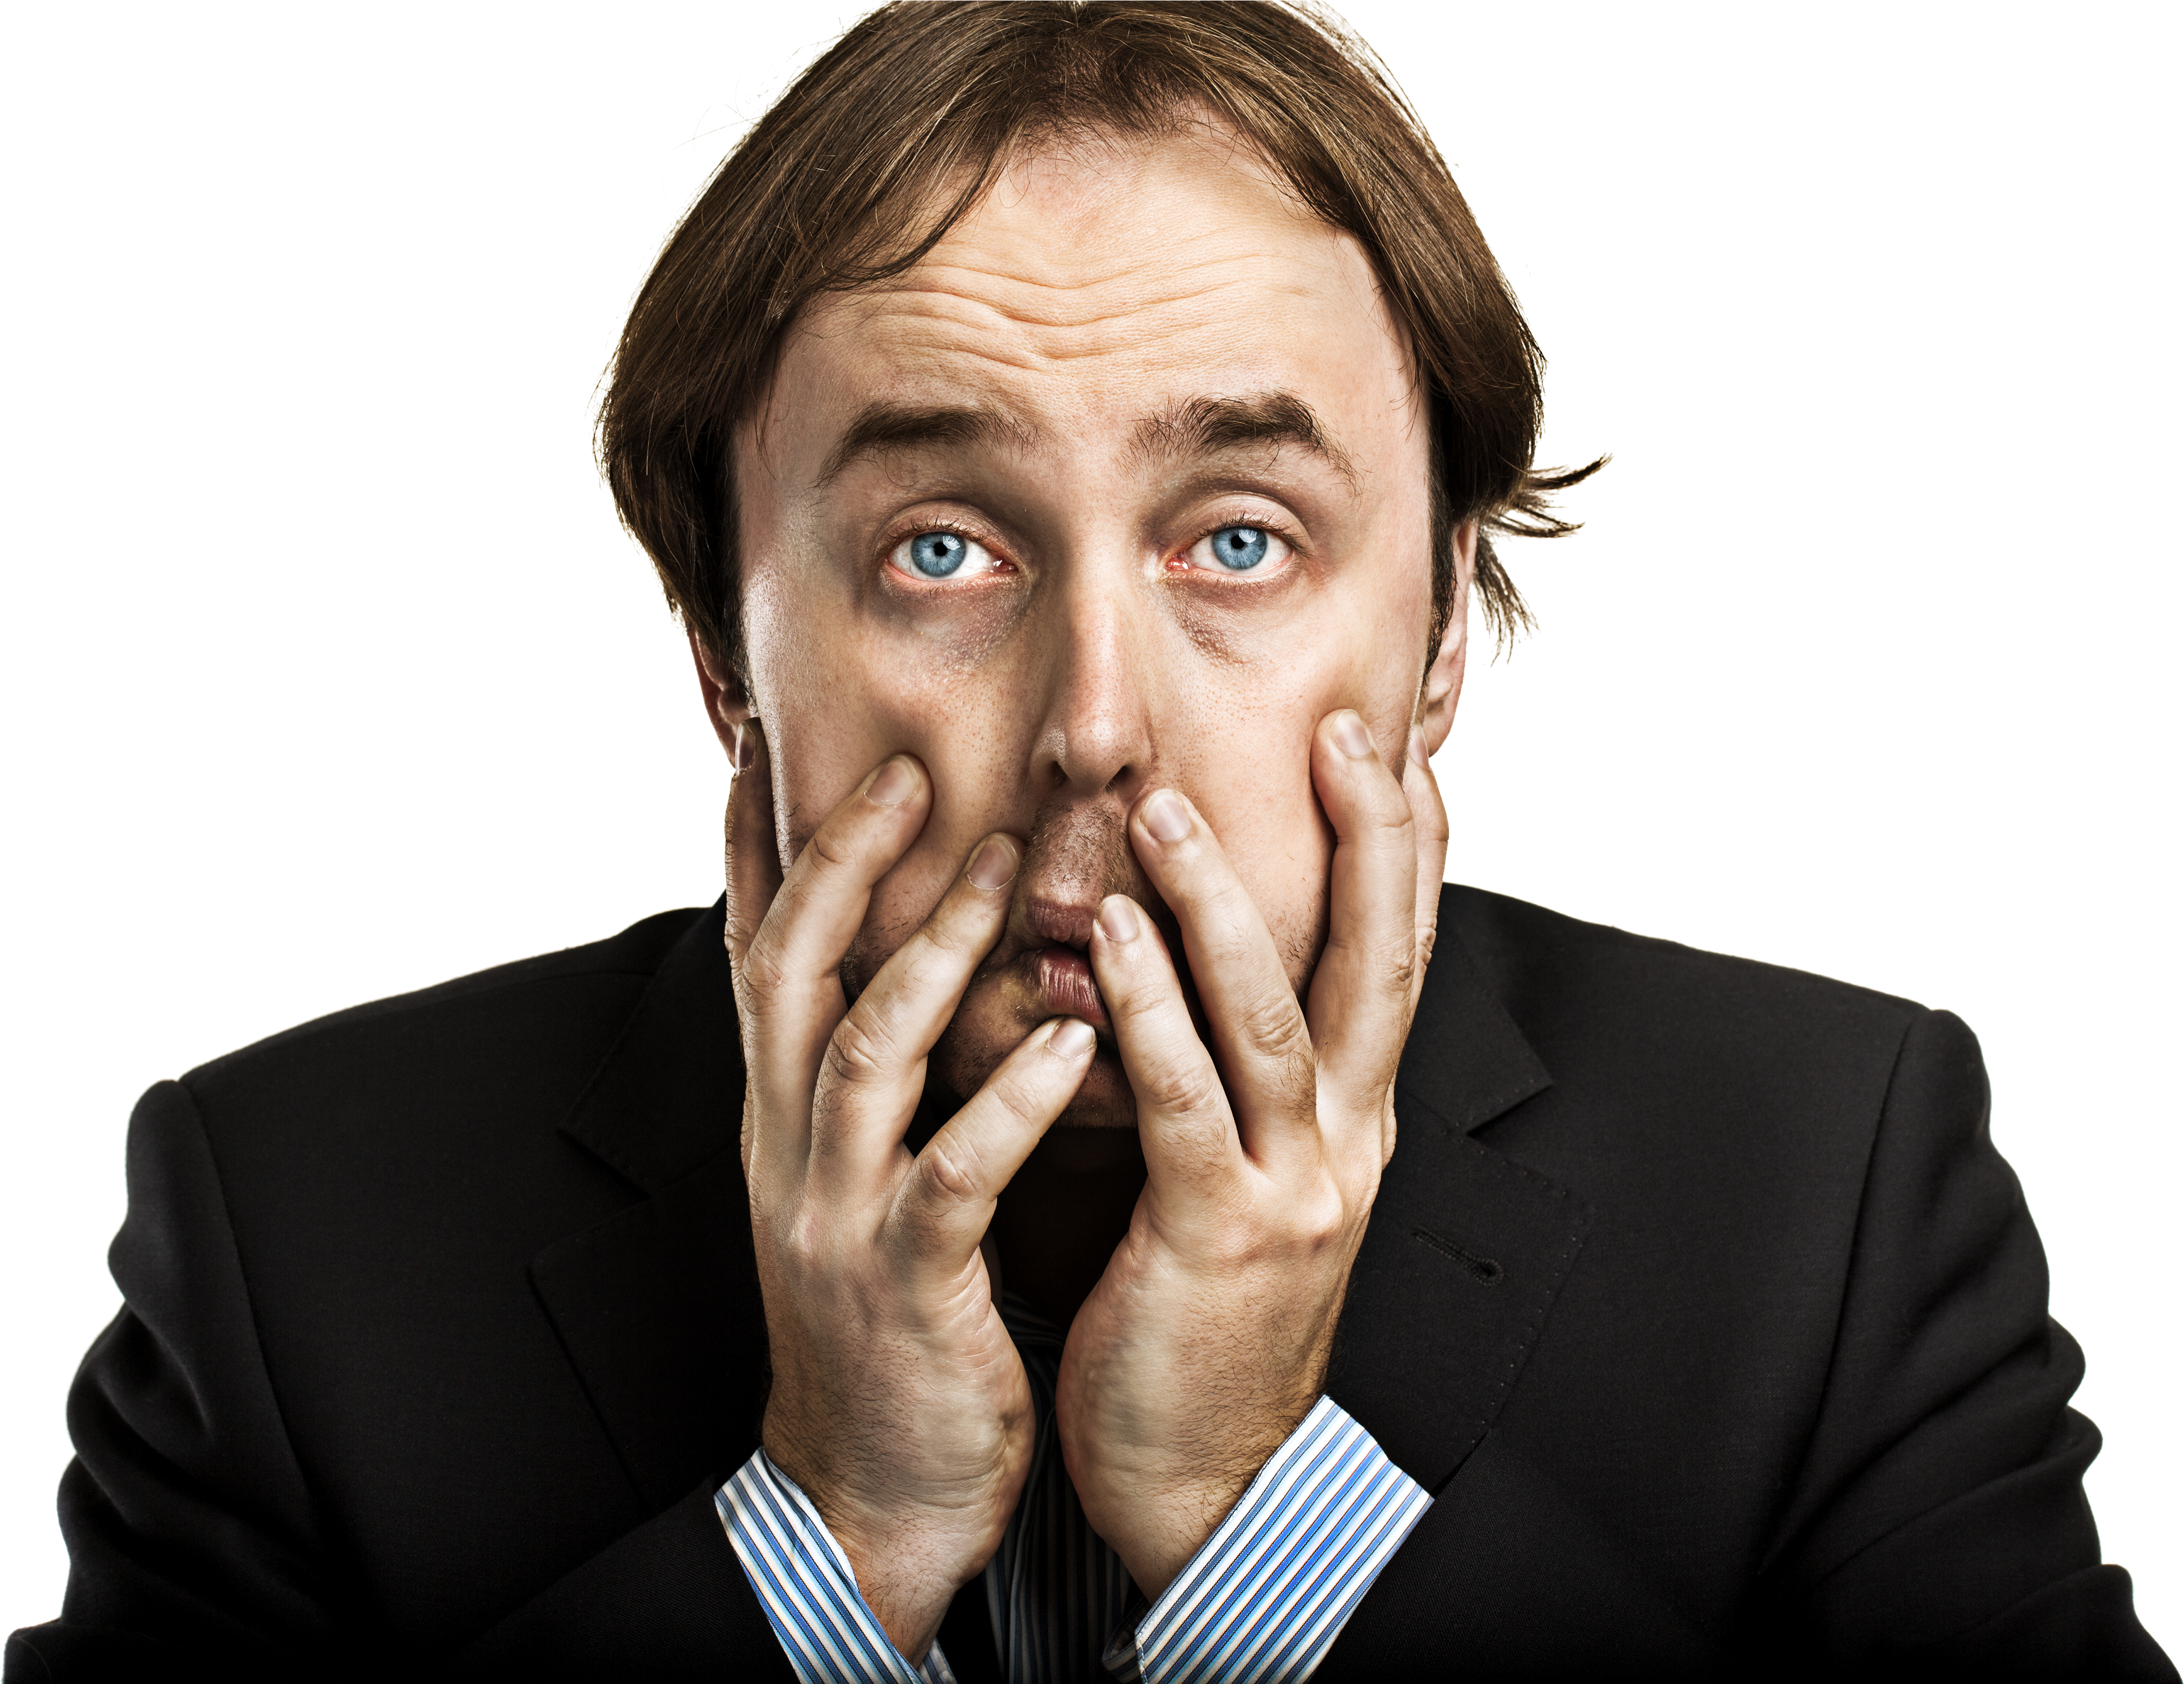 Crying Png Confused Transparent Clipart Person With Hands On Face 4607378 Vippng